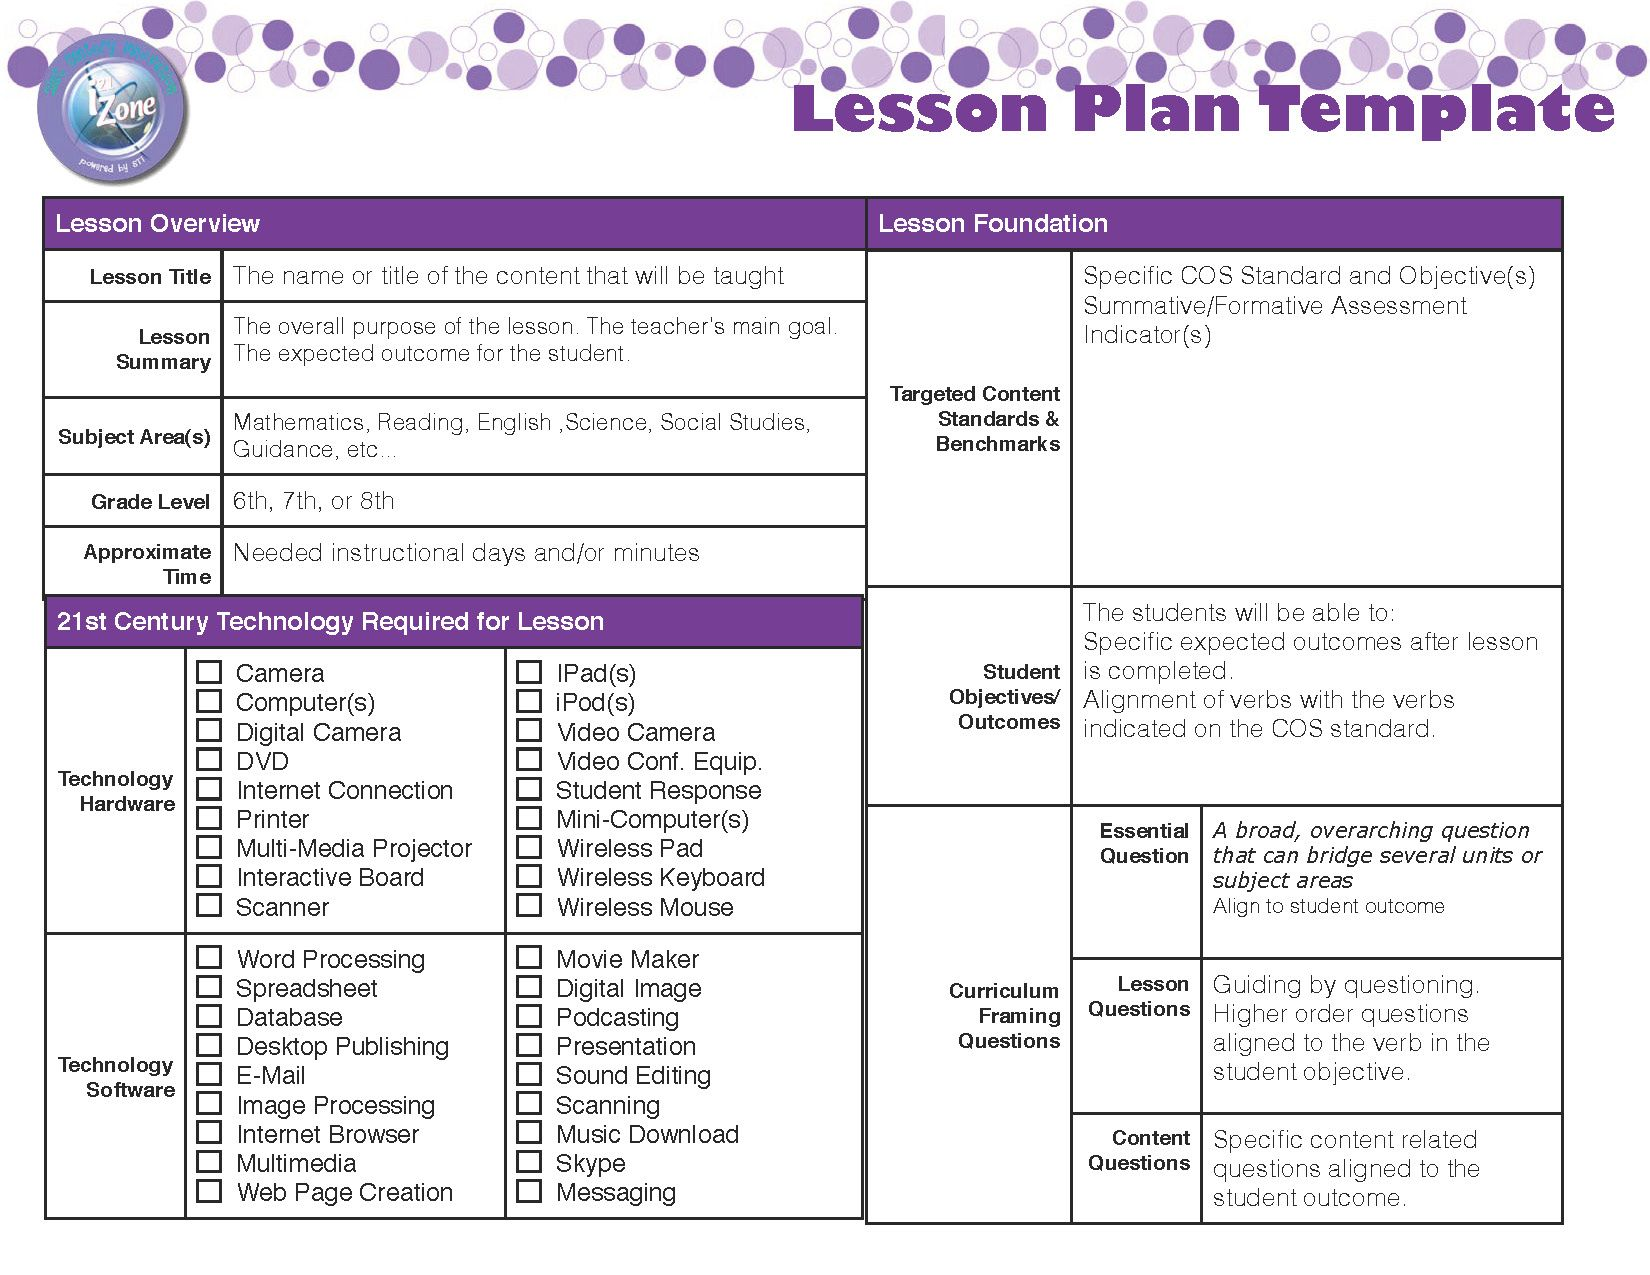 Teaching Strategies Lesson Plan Sample   Wagun Rights  Free Lesson Plan Format